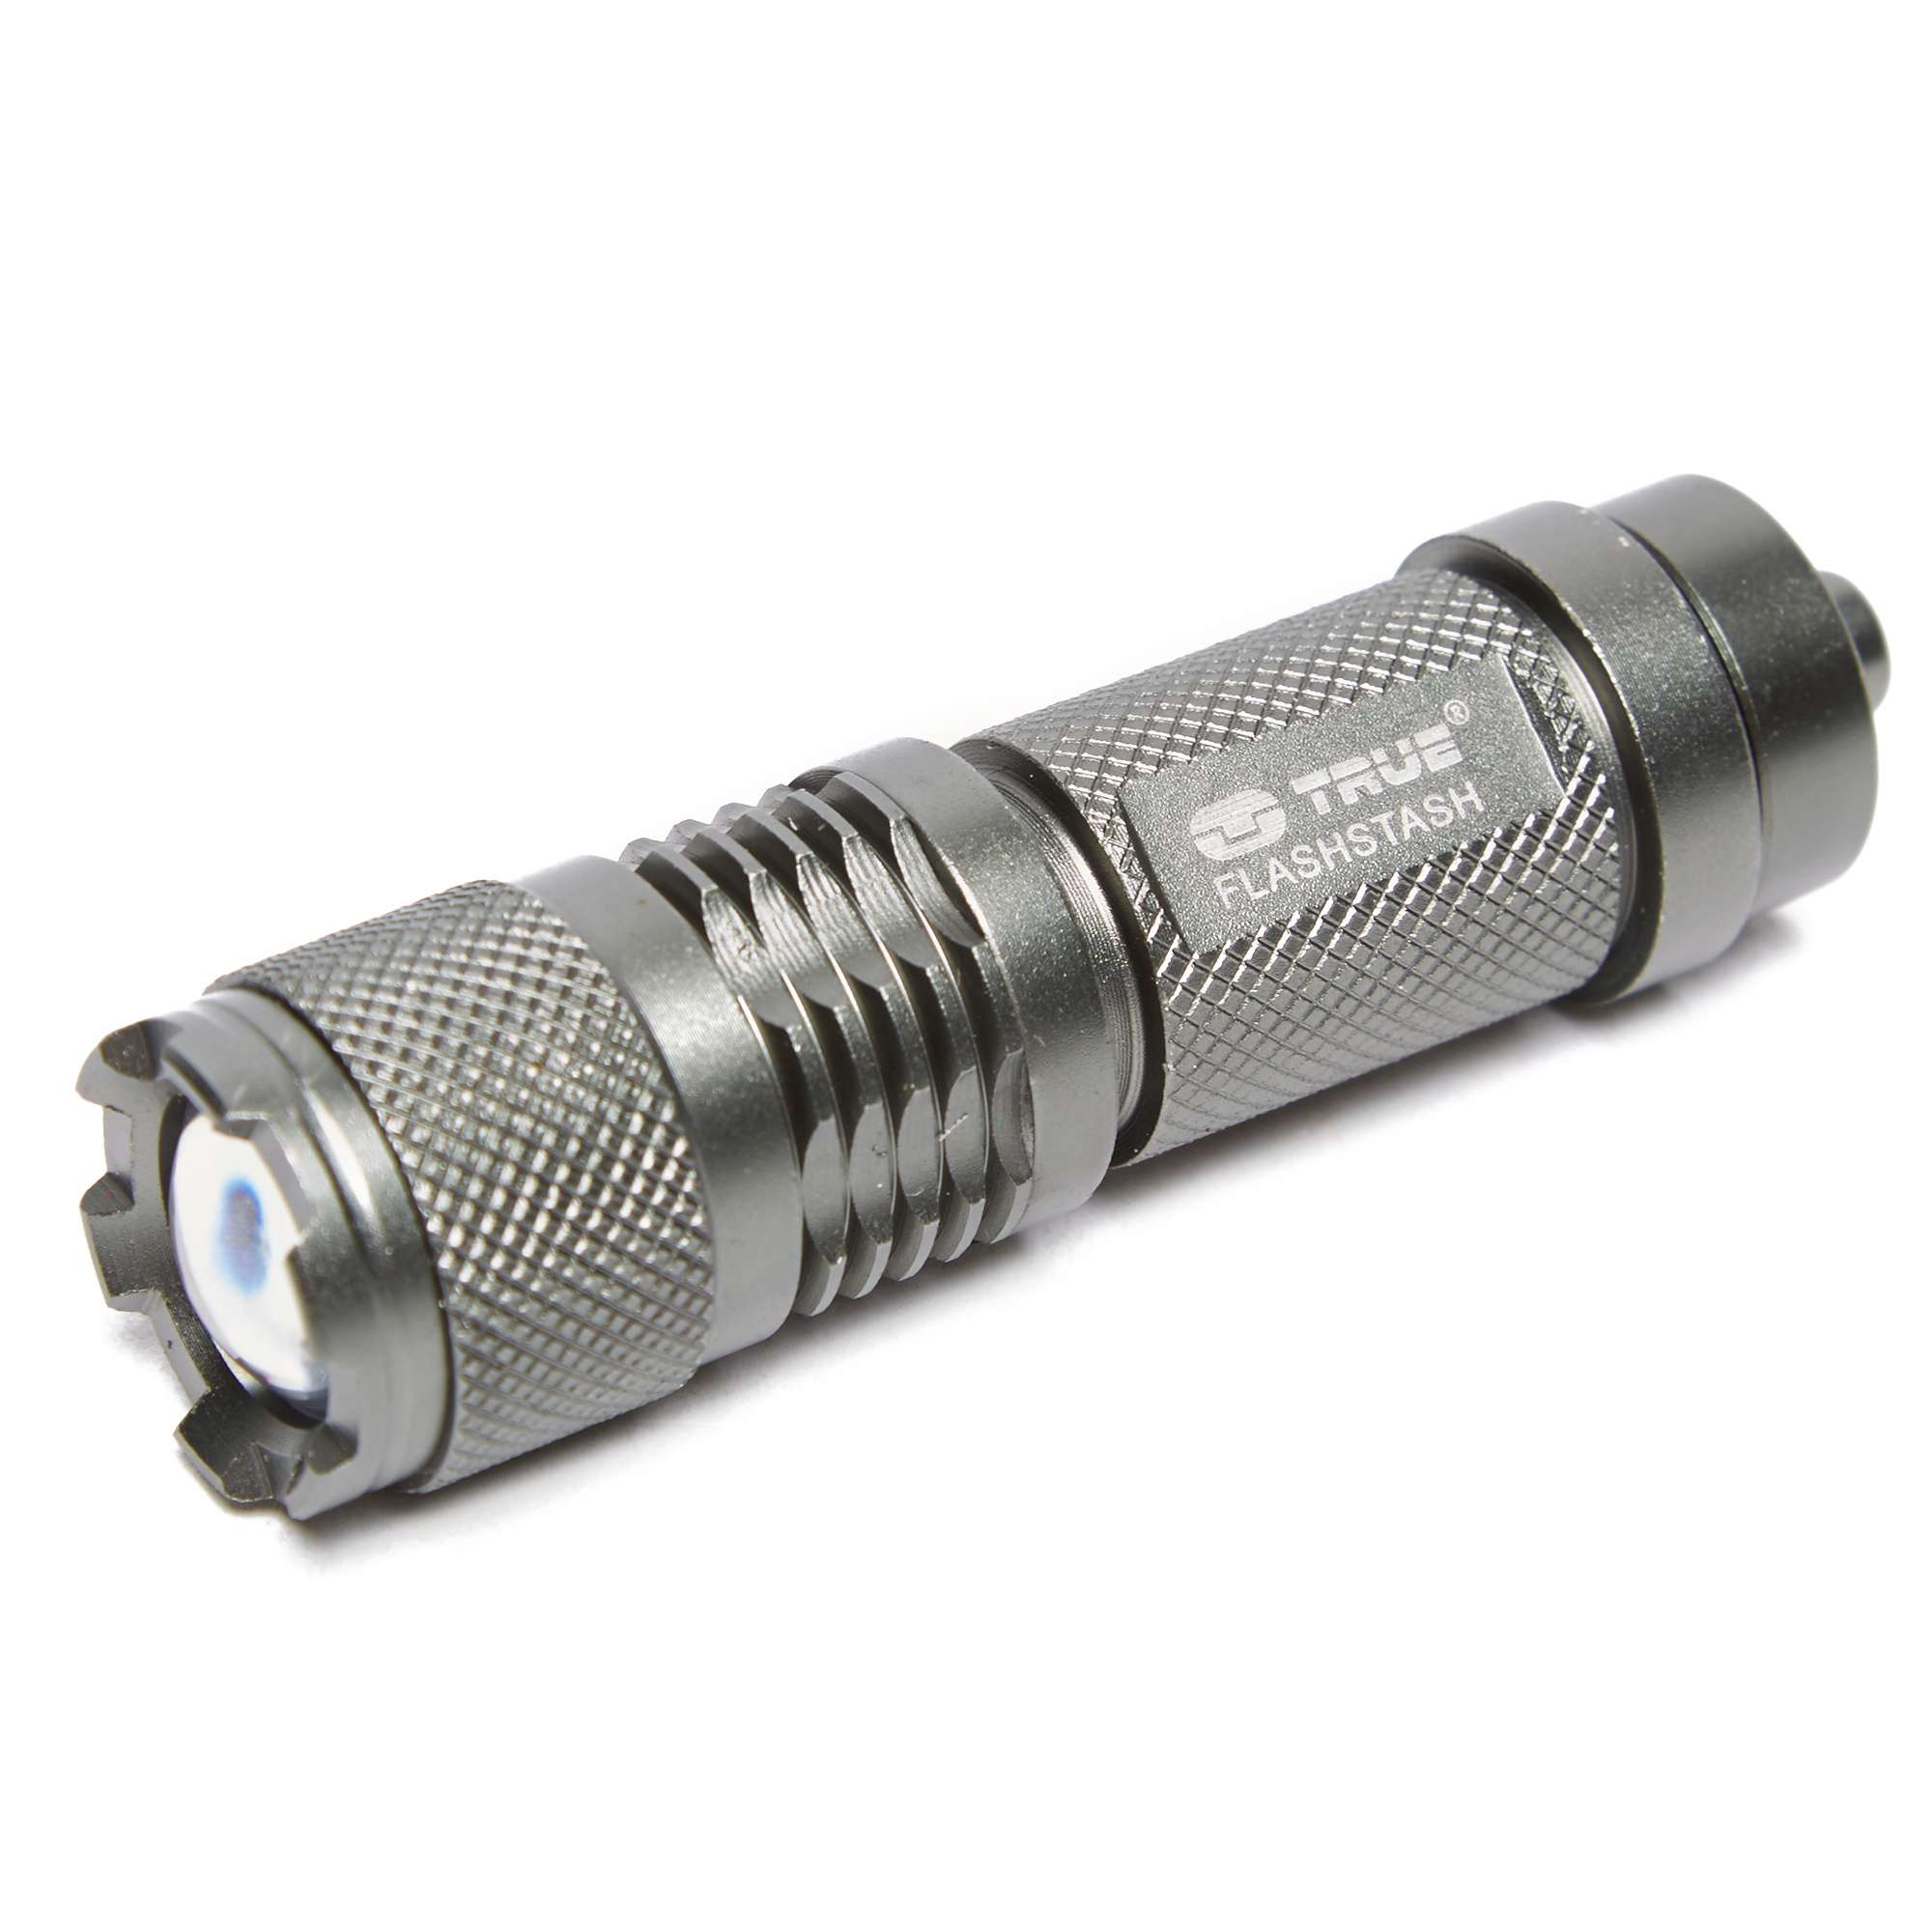 TRUE UTILITY Flash Stash Pocket Flashlight